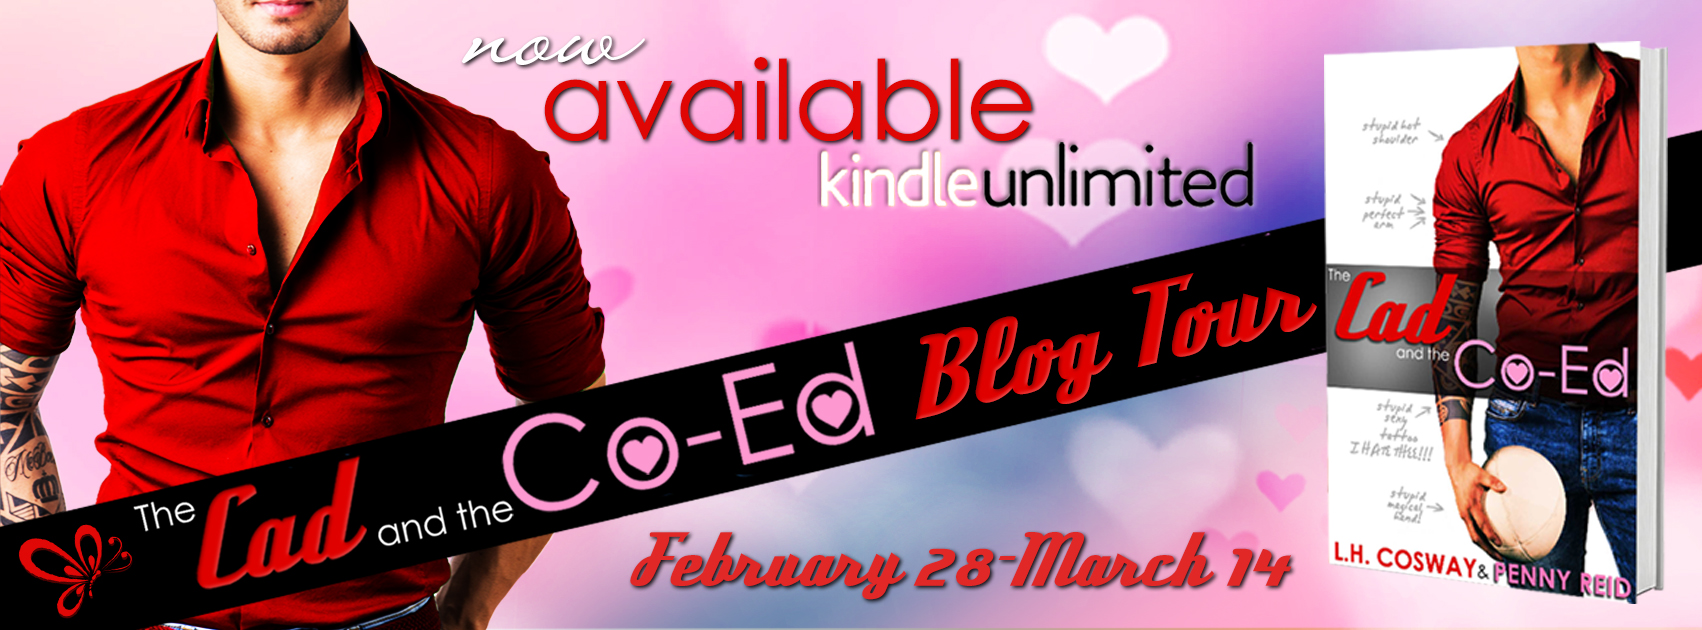 Blog Tour & Review ♥ The Cad and the Co-Ed by L.H. Cosway & Penny Reid